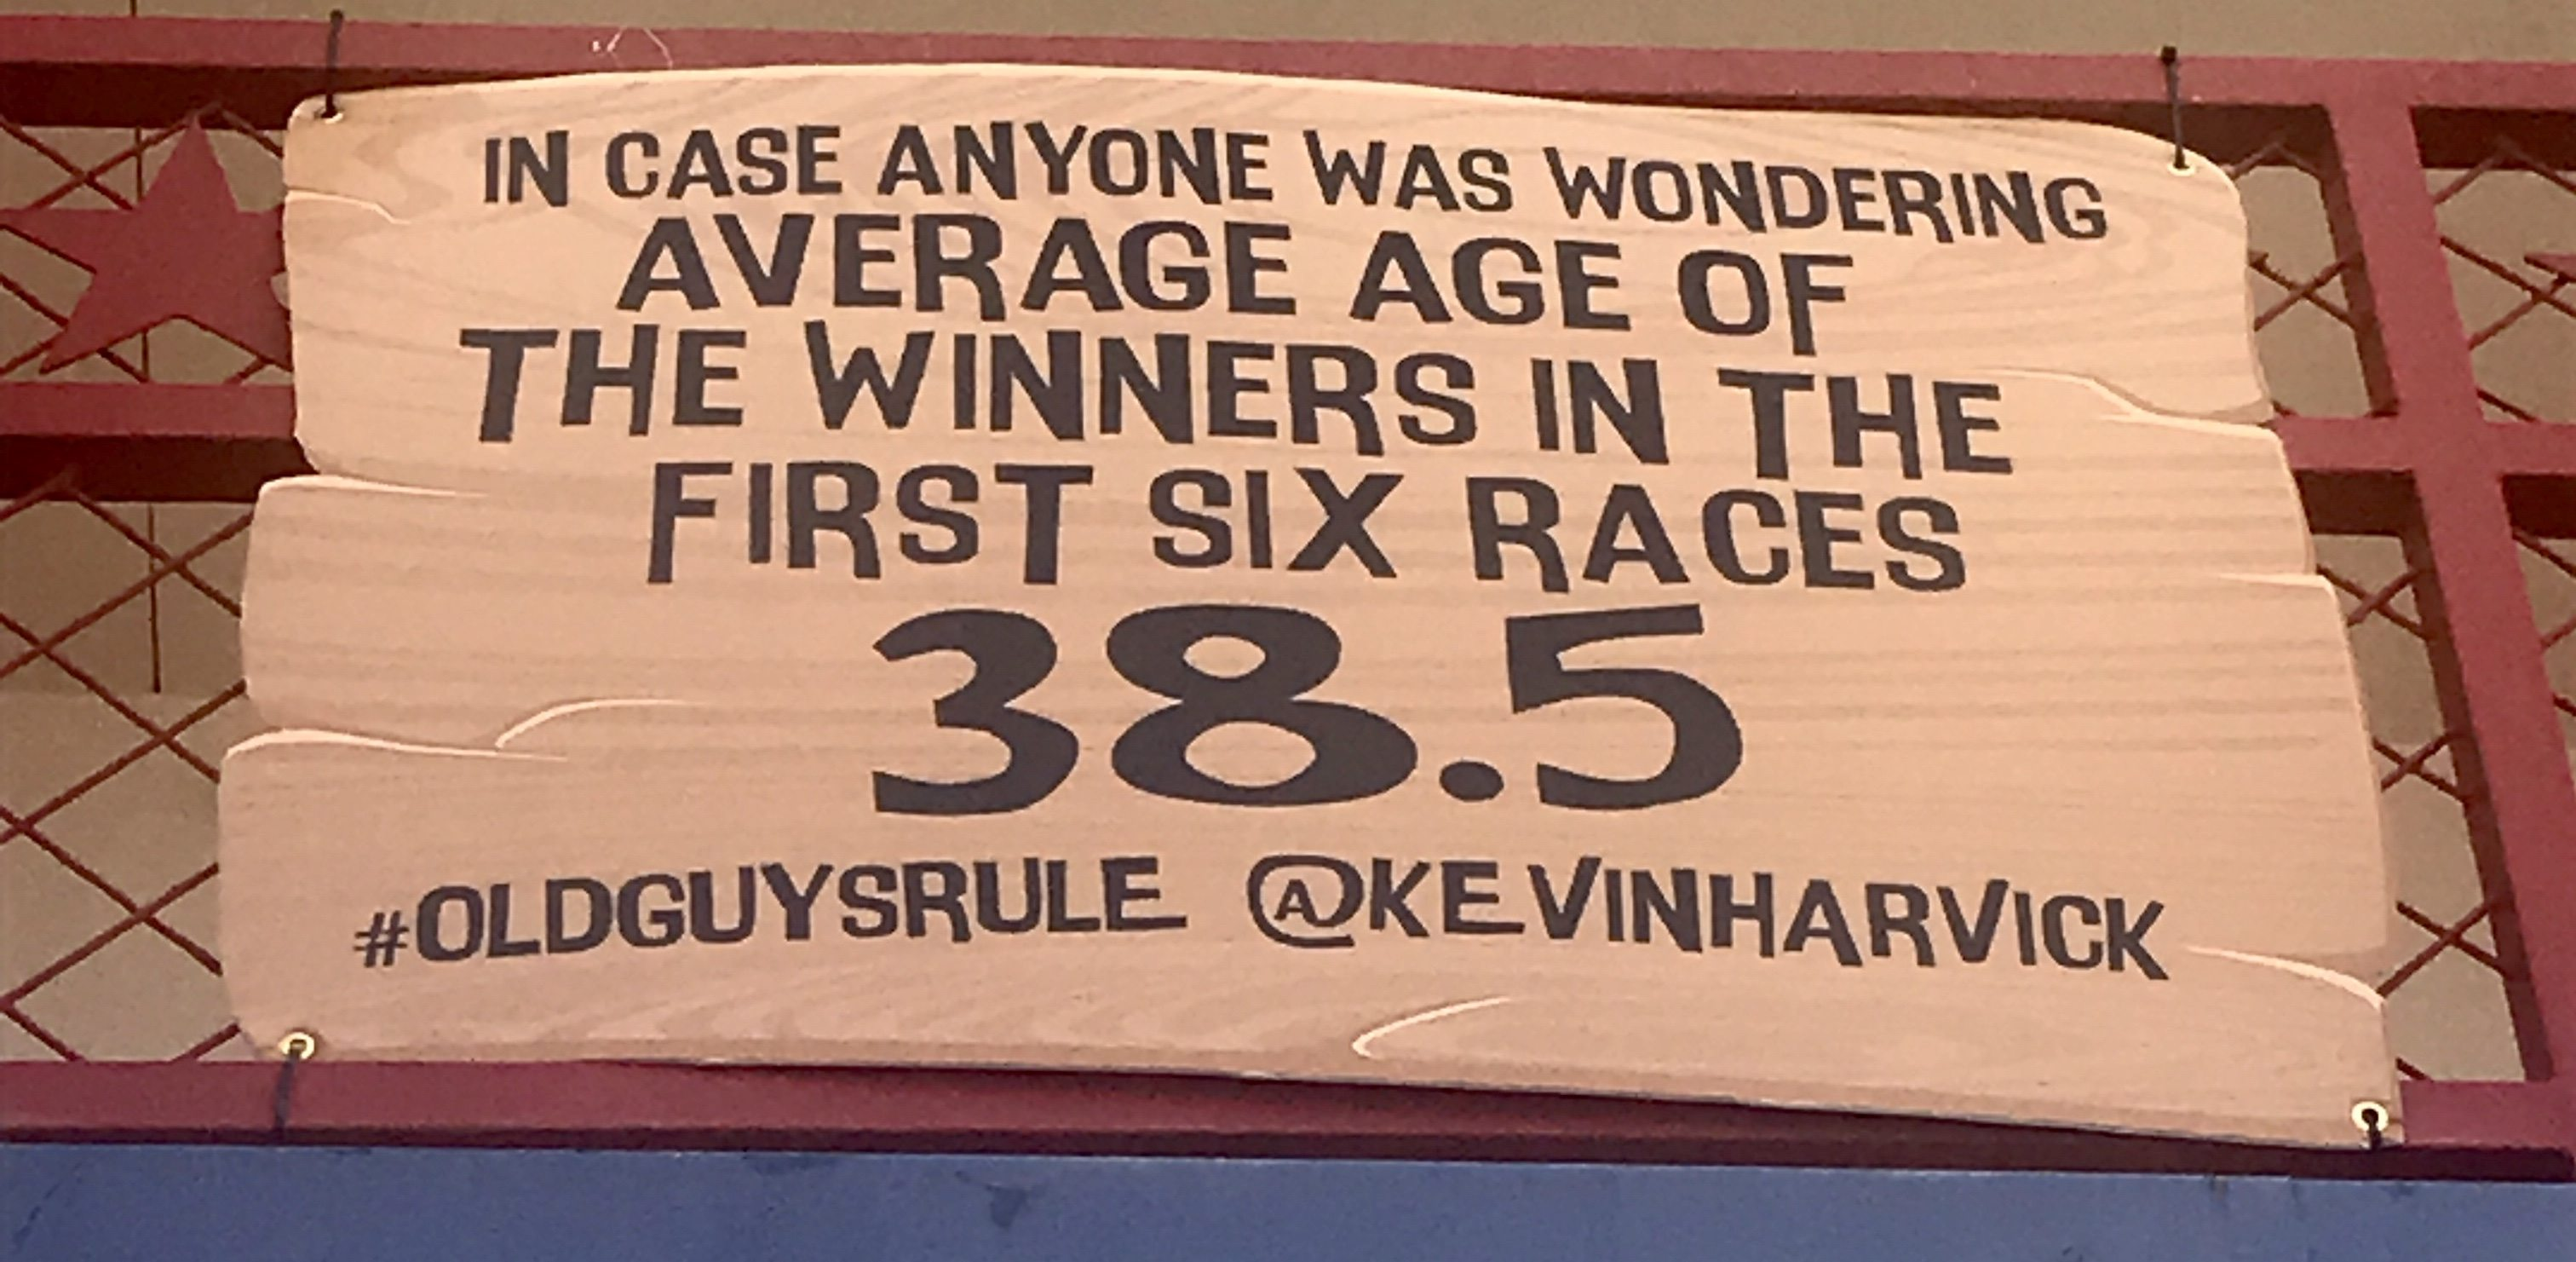 In case anyone was wondering average age of the winners in the first six races 38.5 #OldGuysRule -Kevin Harvick